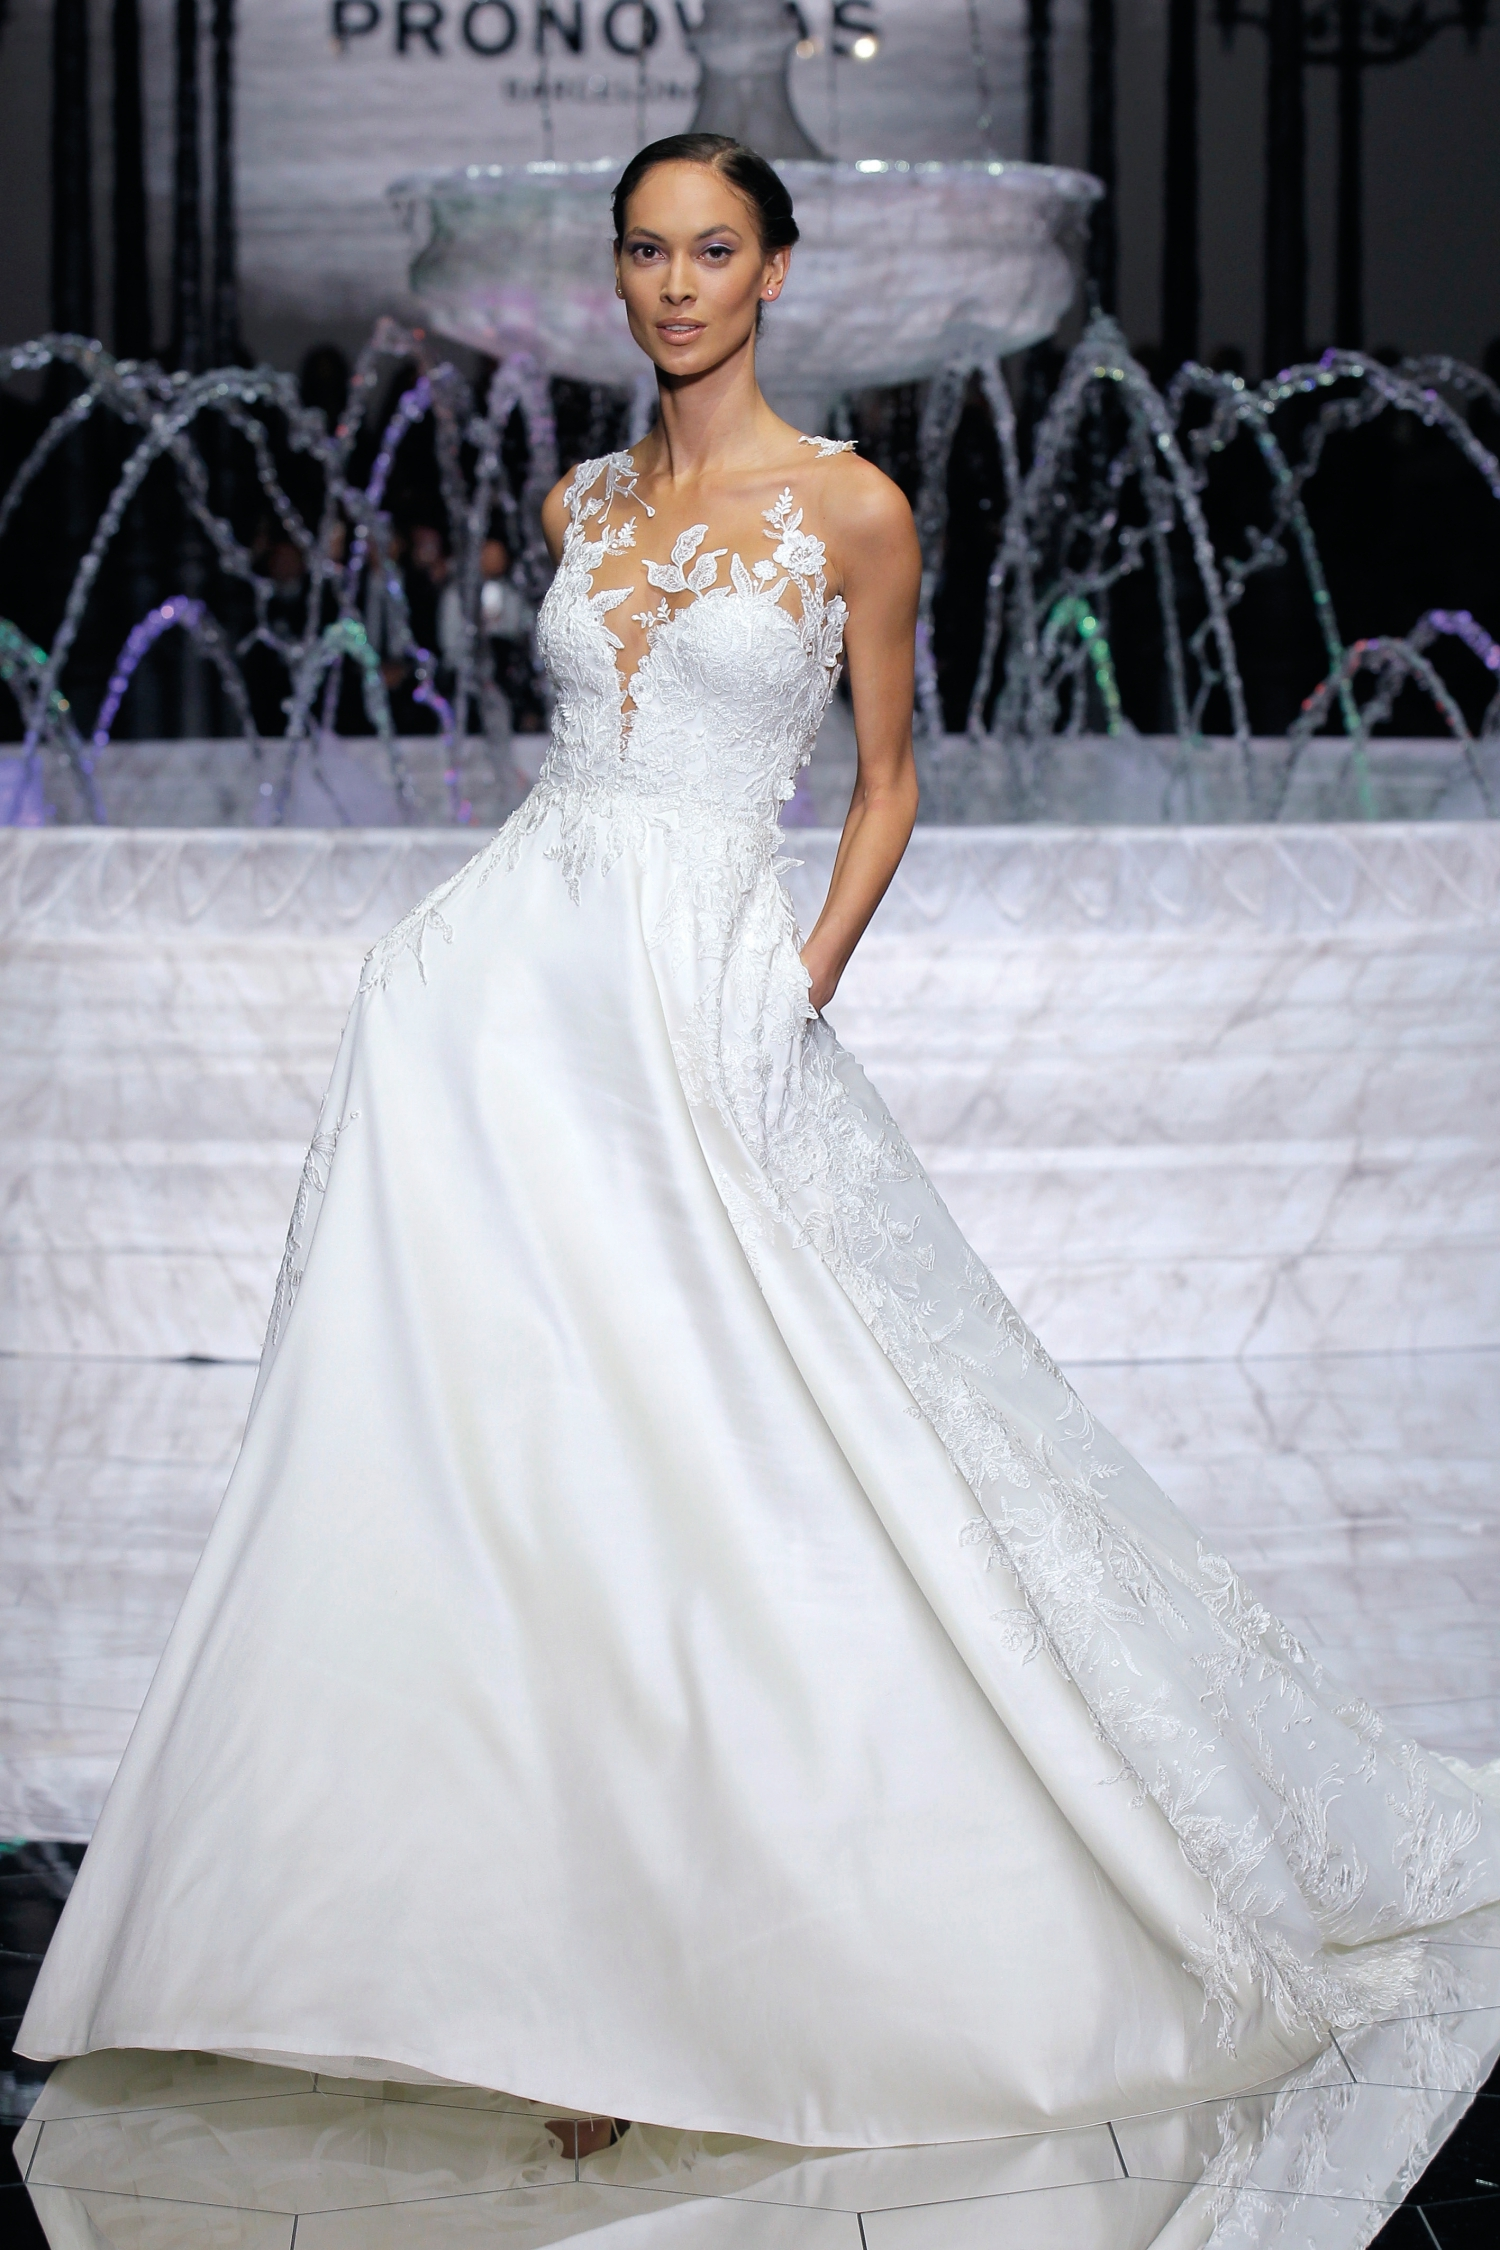 1-PRONOVIAS FASHION SHOW_Ria